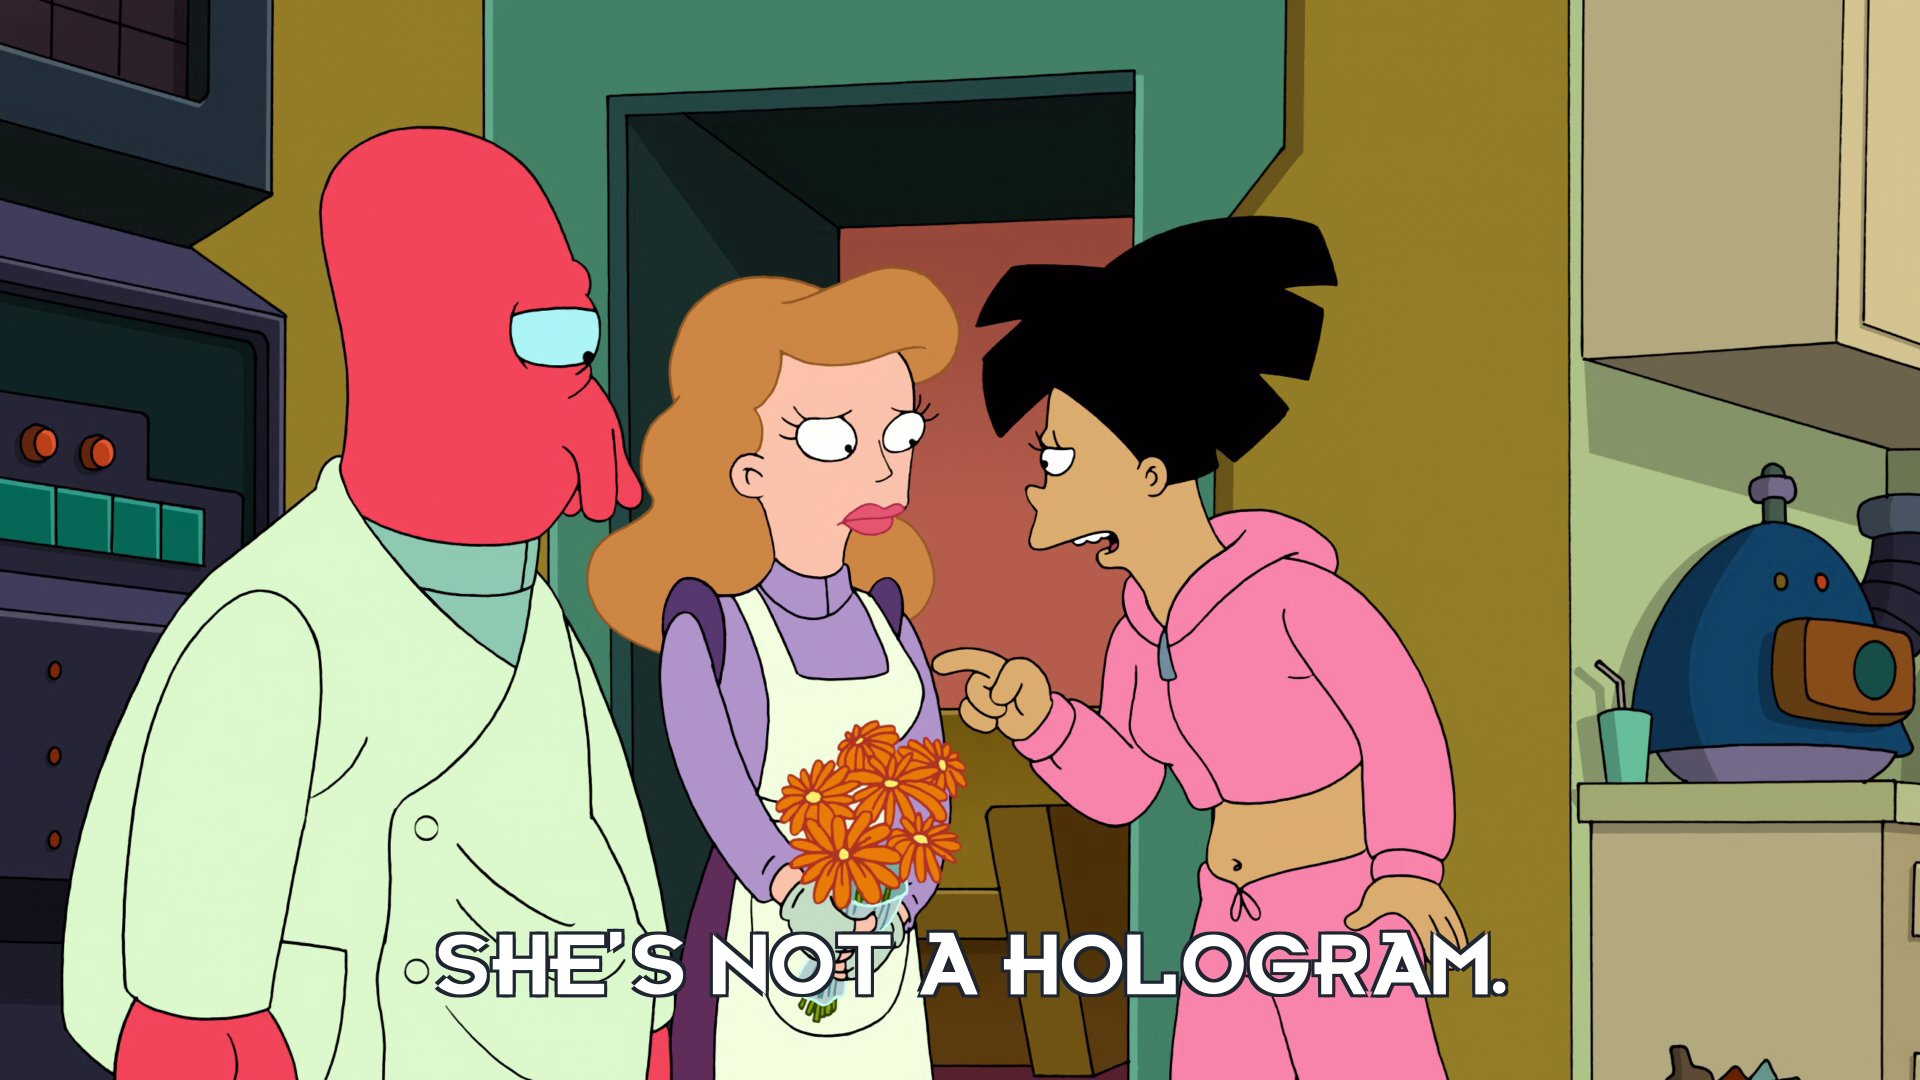 Amy Wong: She's not a hologram.